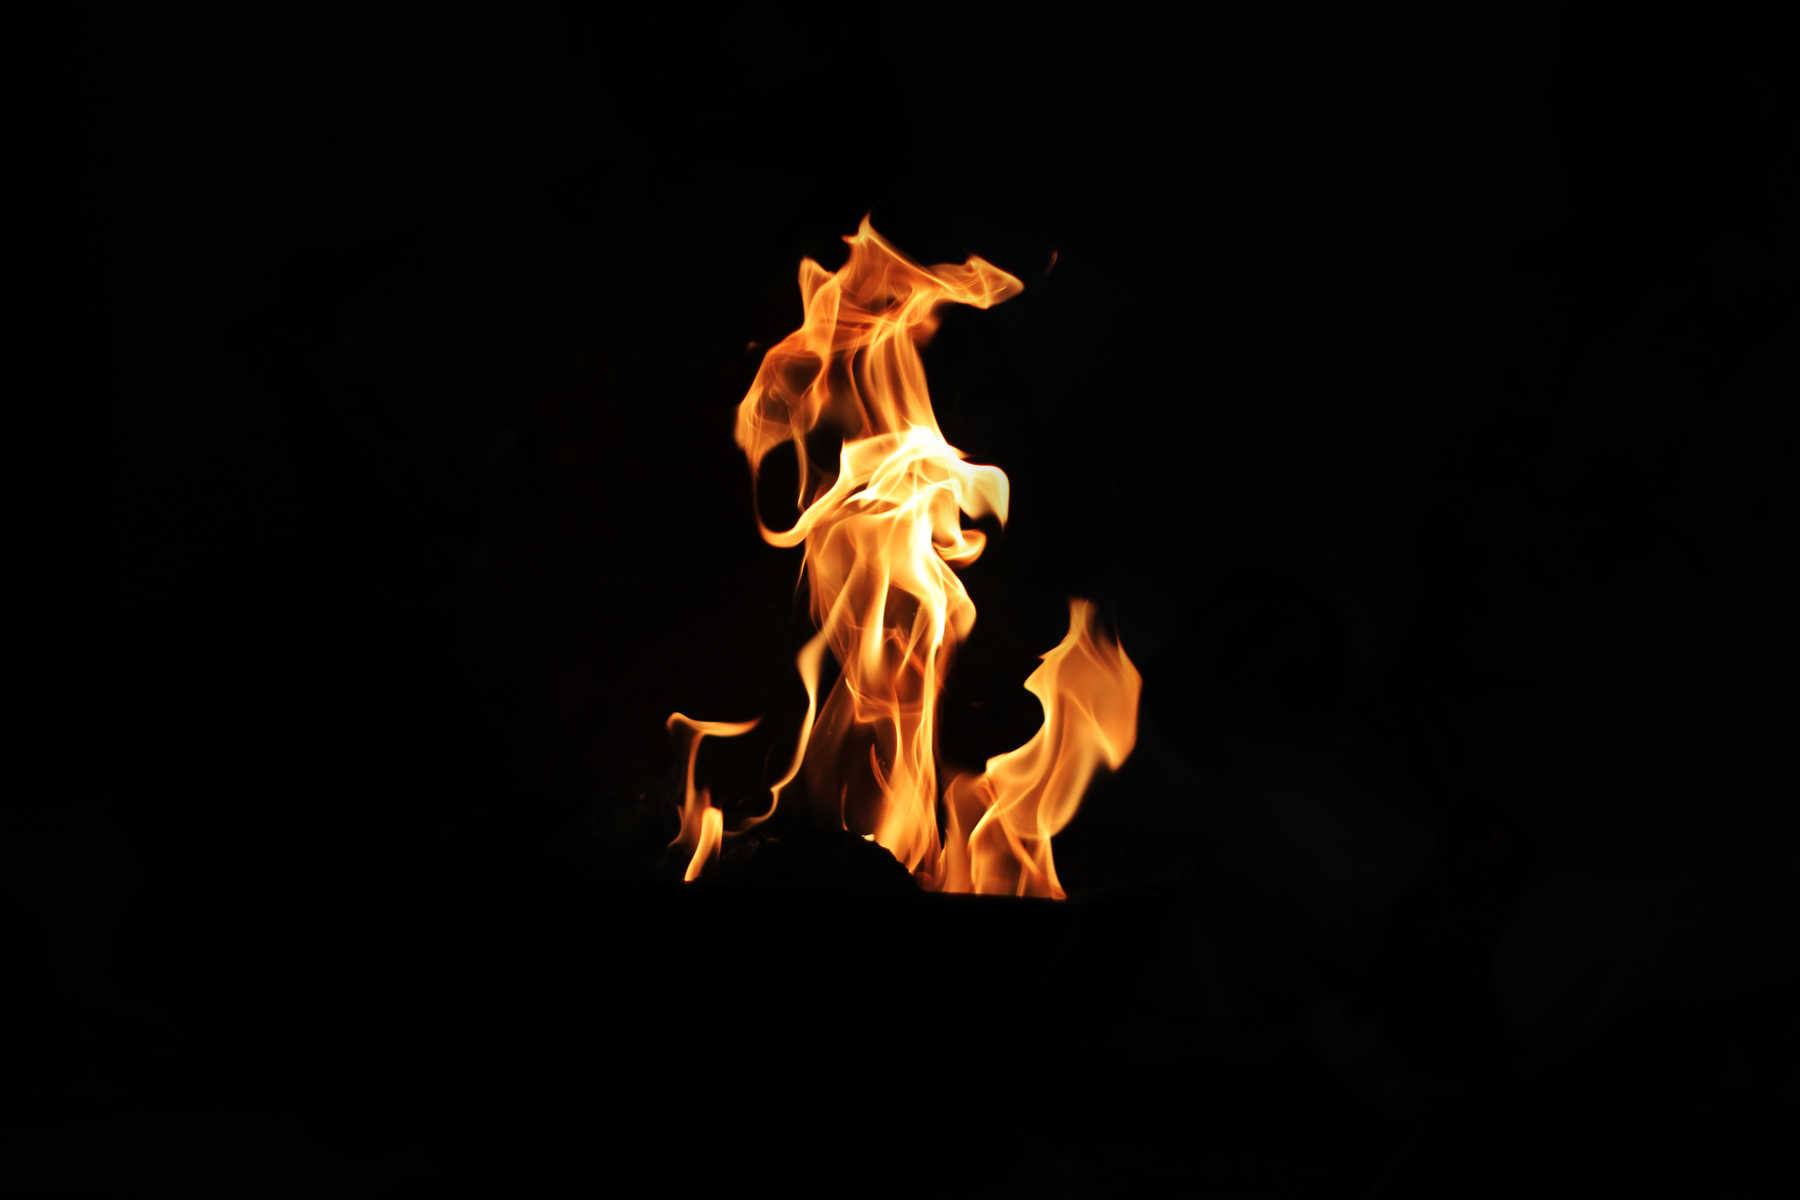 Eagle in the Fire